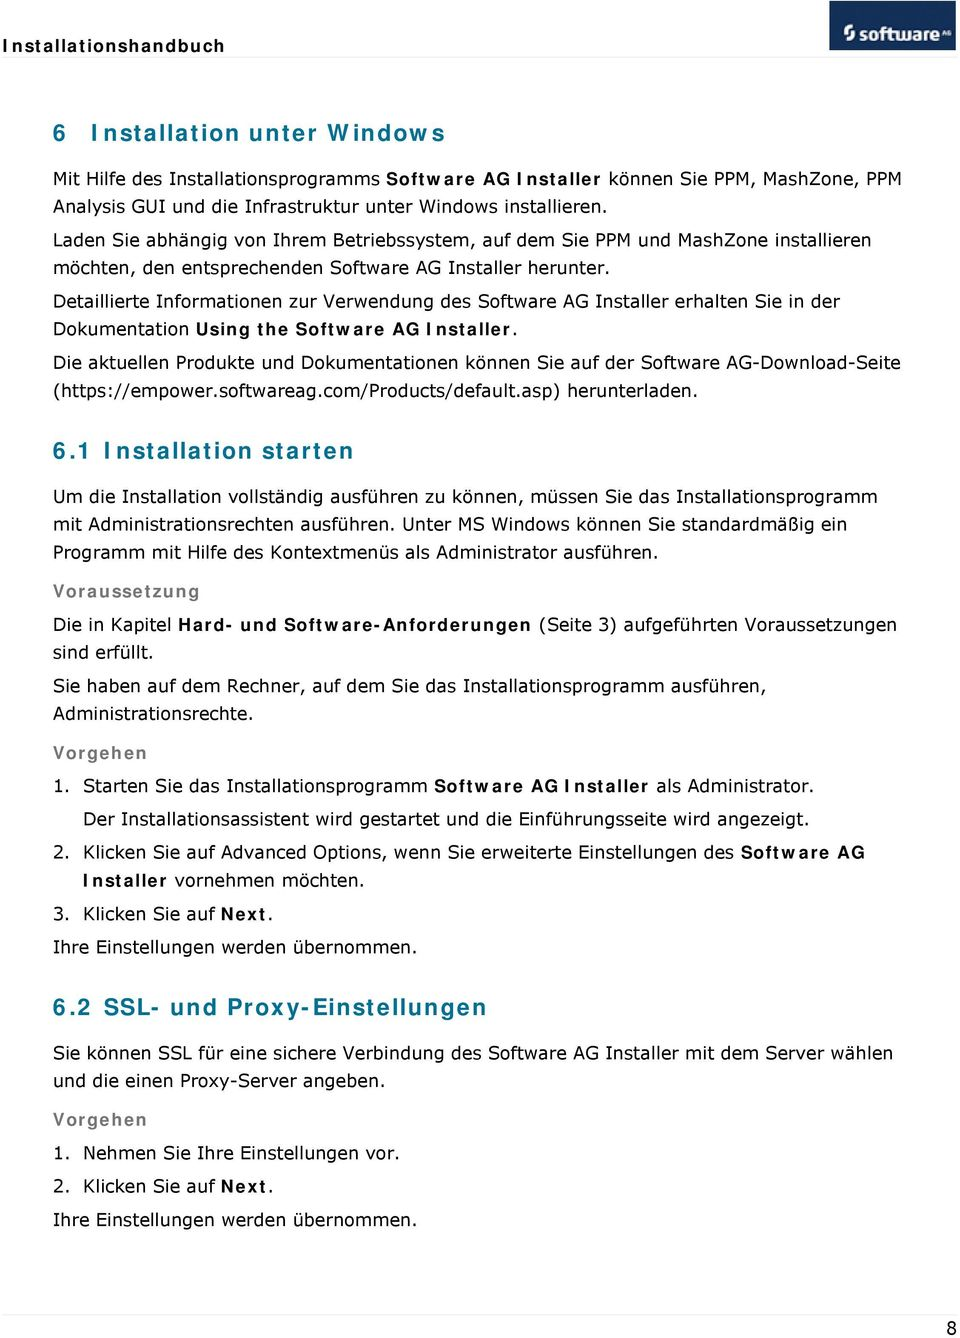 Detaillierte Informationen zur Verwendung des Software AG Installer erhalten Sie in der Dokumentation Using the Software AG Installer.